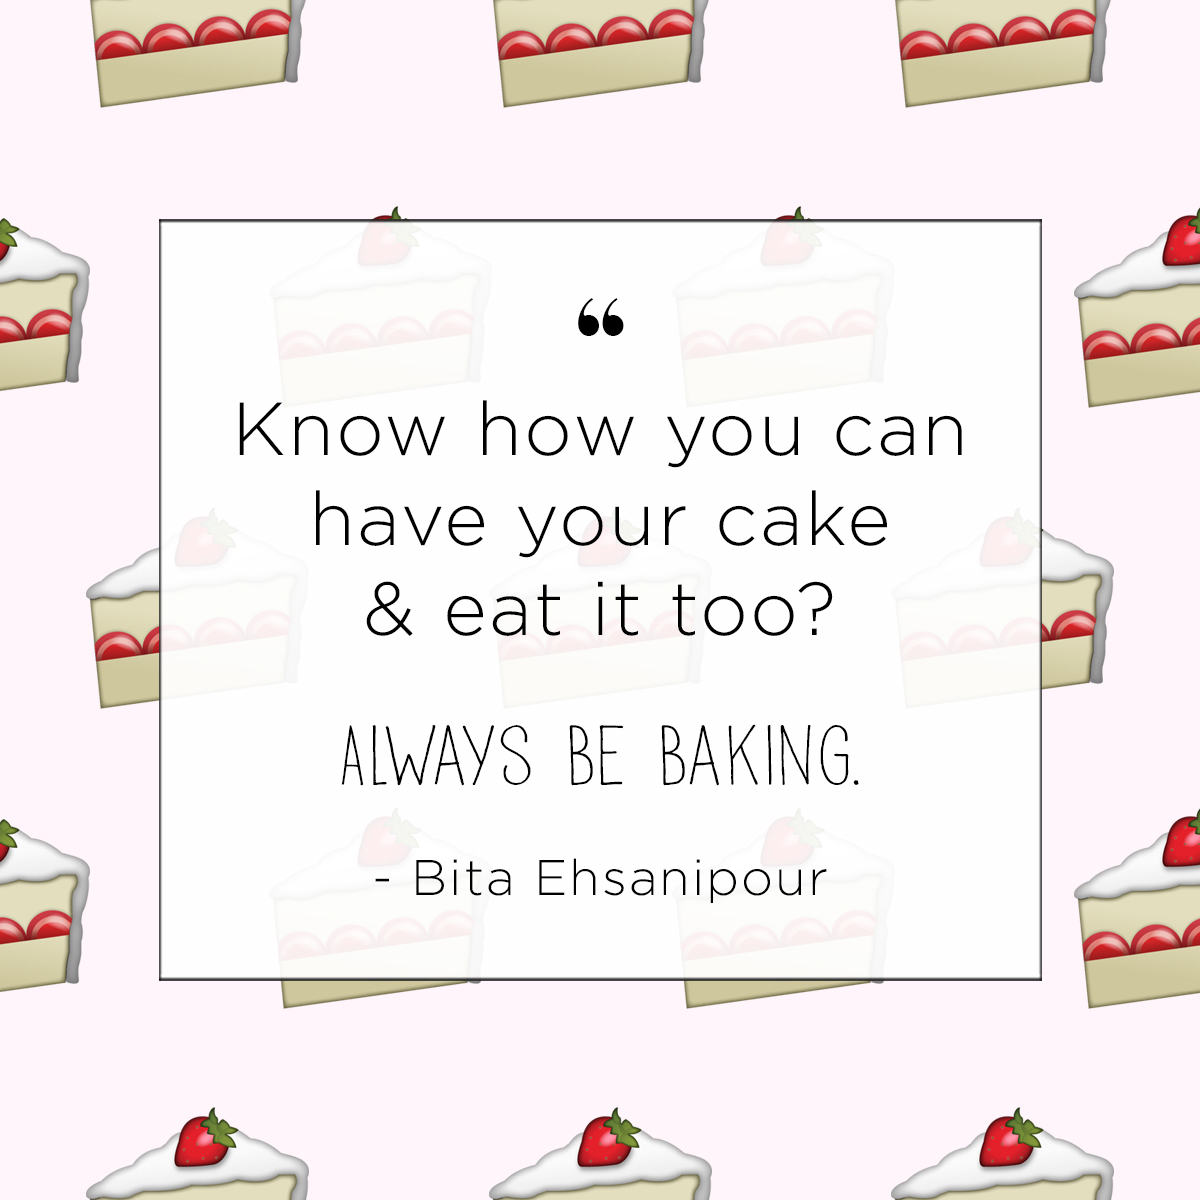 know-how-you-can-have-your-cake-and-eat-it-too_always-be-baking_by-bita-ehsanipour_joyfetti-com